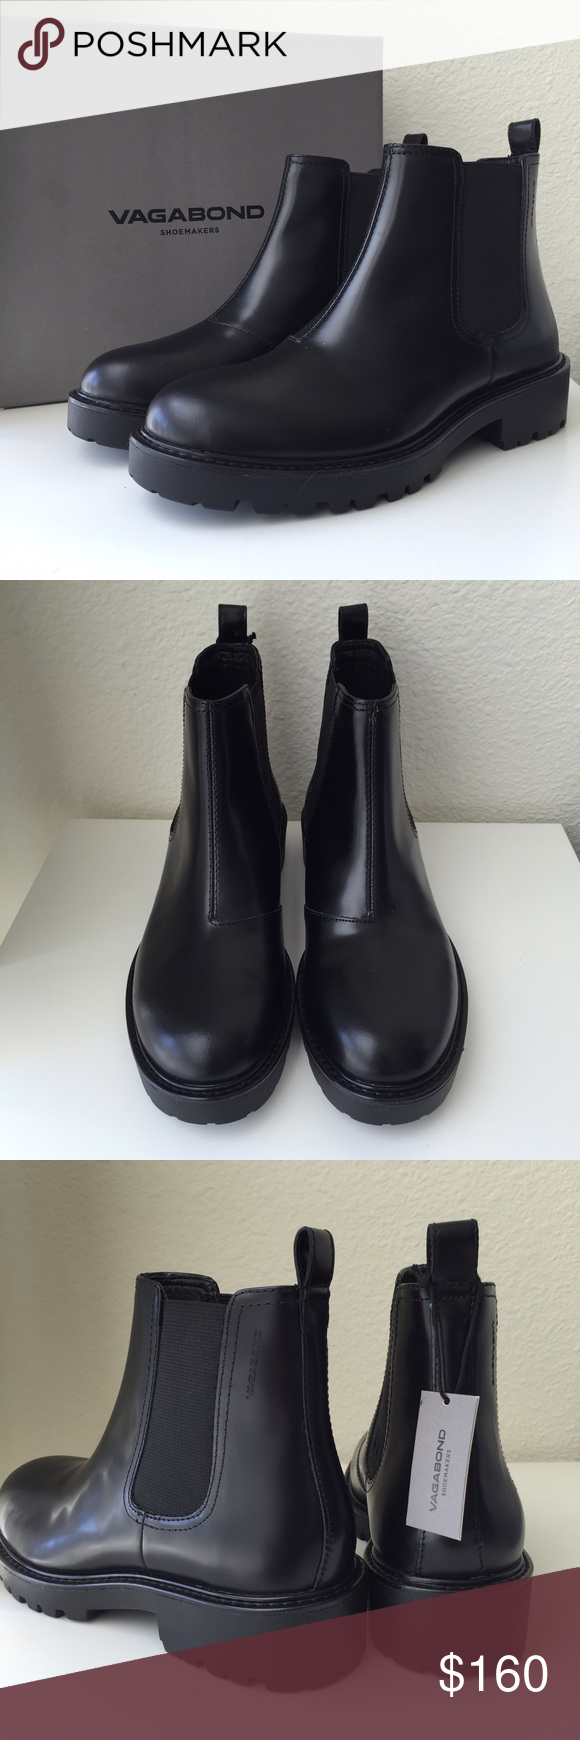 12847c2df2a Vagabond Kenvova Chelsea Boots Brand new with tag! The Kenova ...